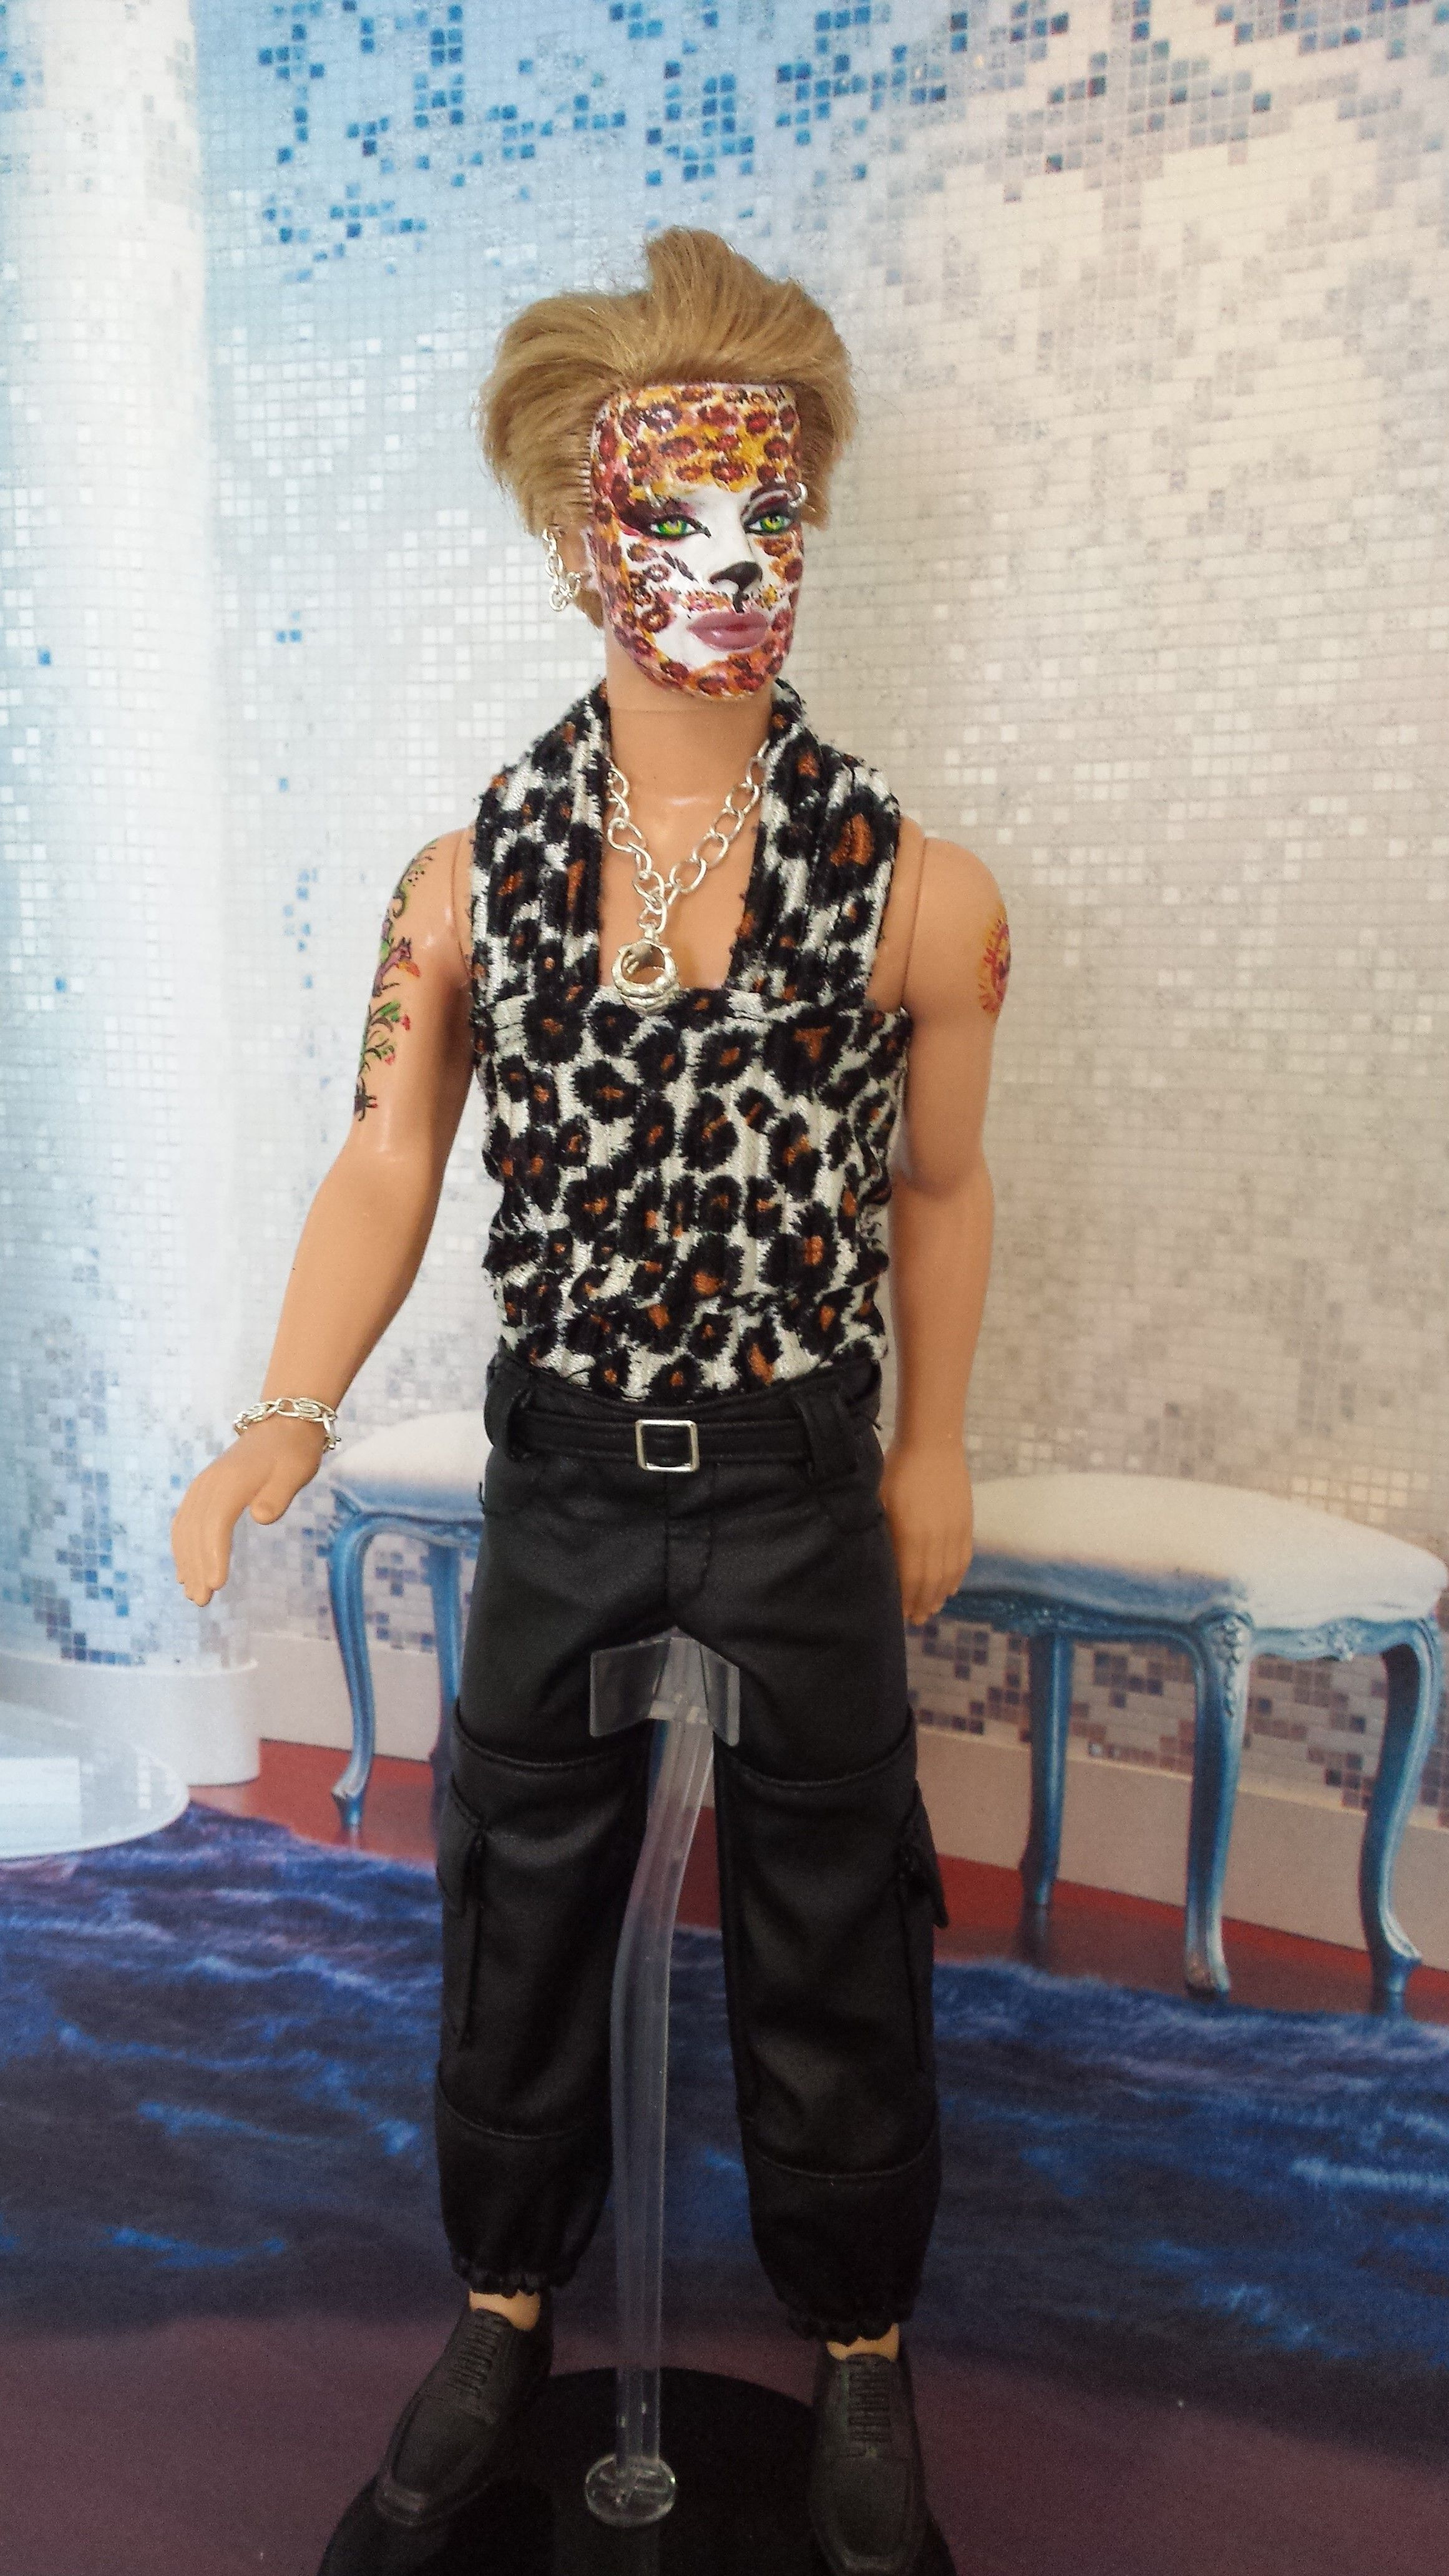 Selling Beautiful and authentic KEN OOAK Manimal Furry style !!!  unique !! Complete new make up repainted. Doll + dress + jewelry